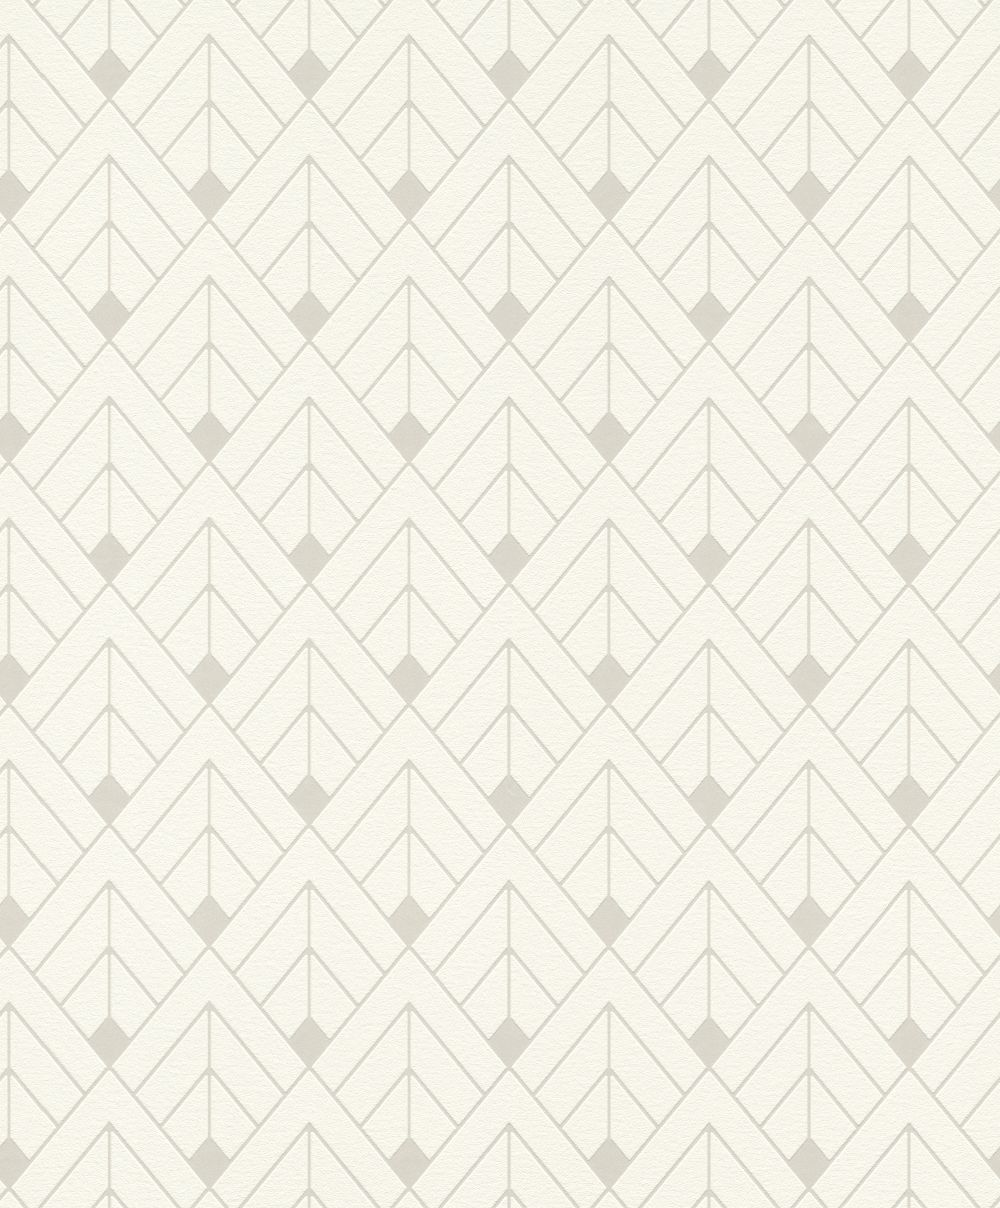 Albany Gatsby Ivory Wallpaper - Product code: 403329